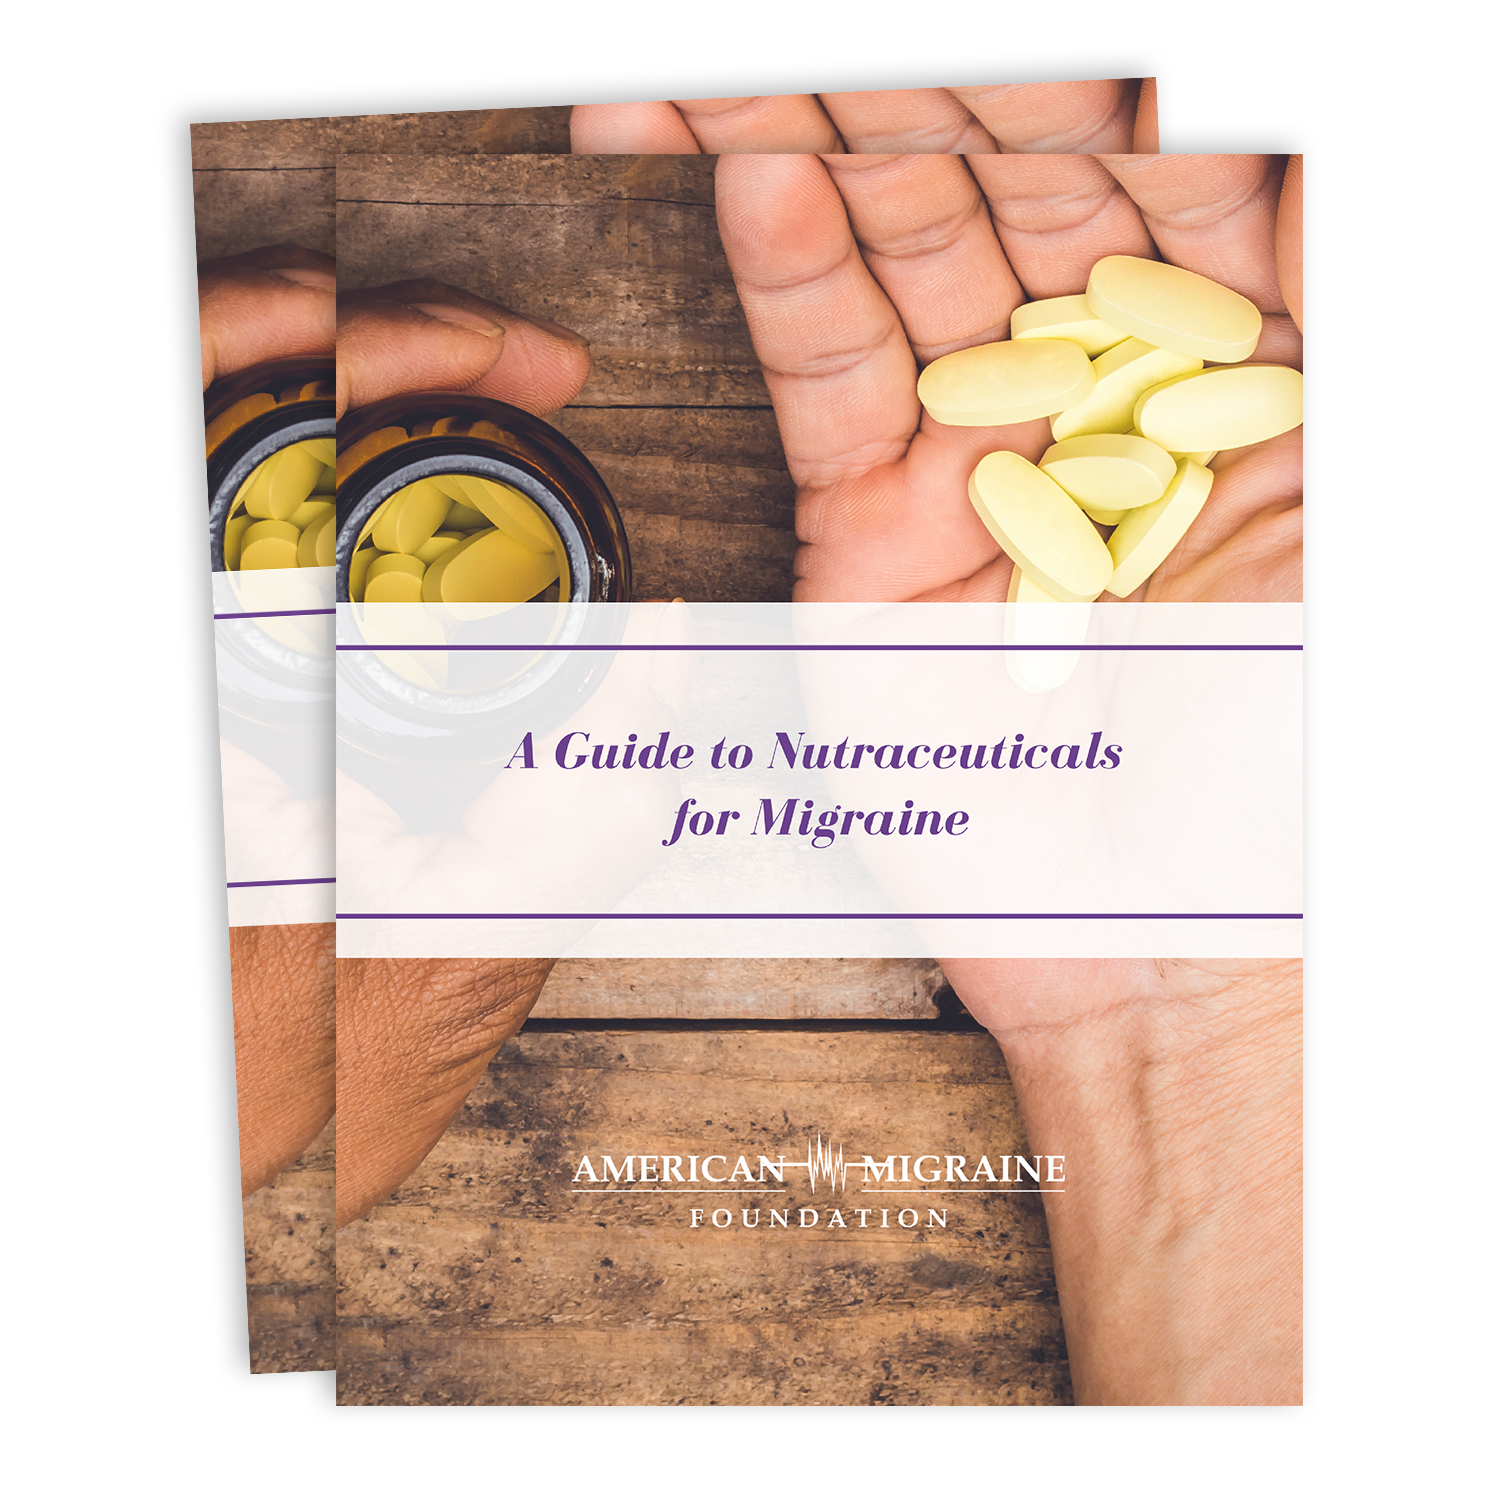 A Guide to Nutraceuticals for Migraine